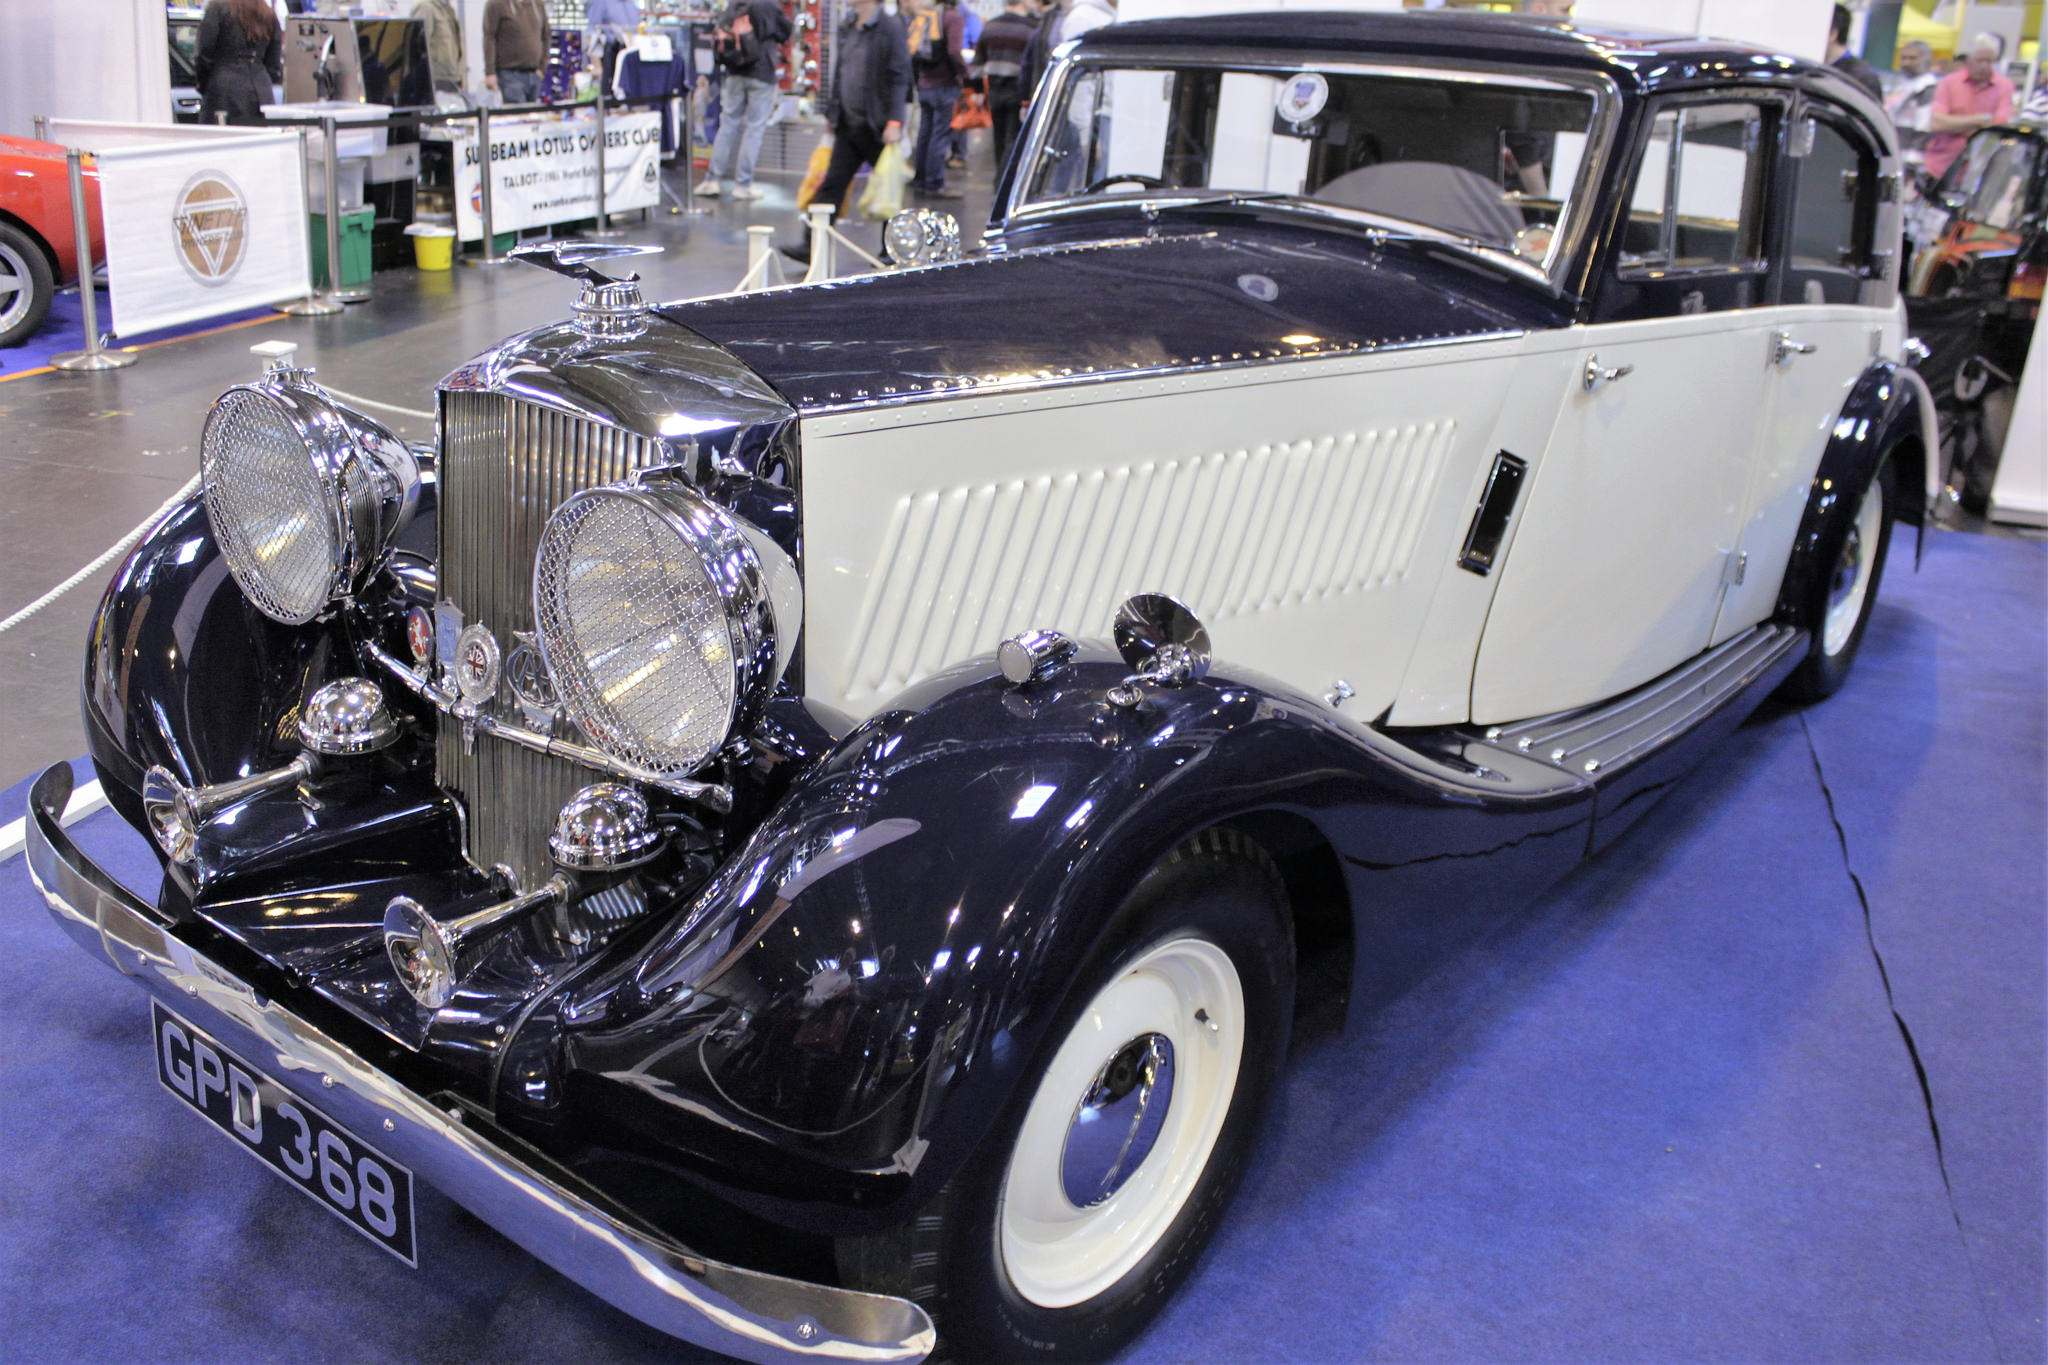 nec classic car NEC Classic Car Show 2016   The Best Indoor Classic Car Show in the UK